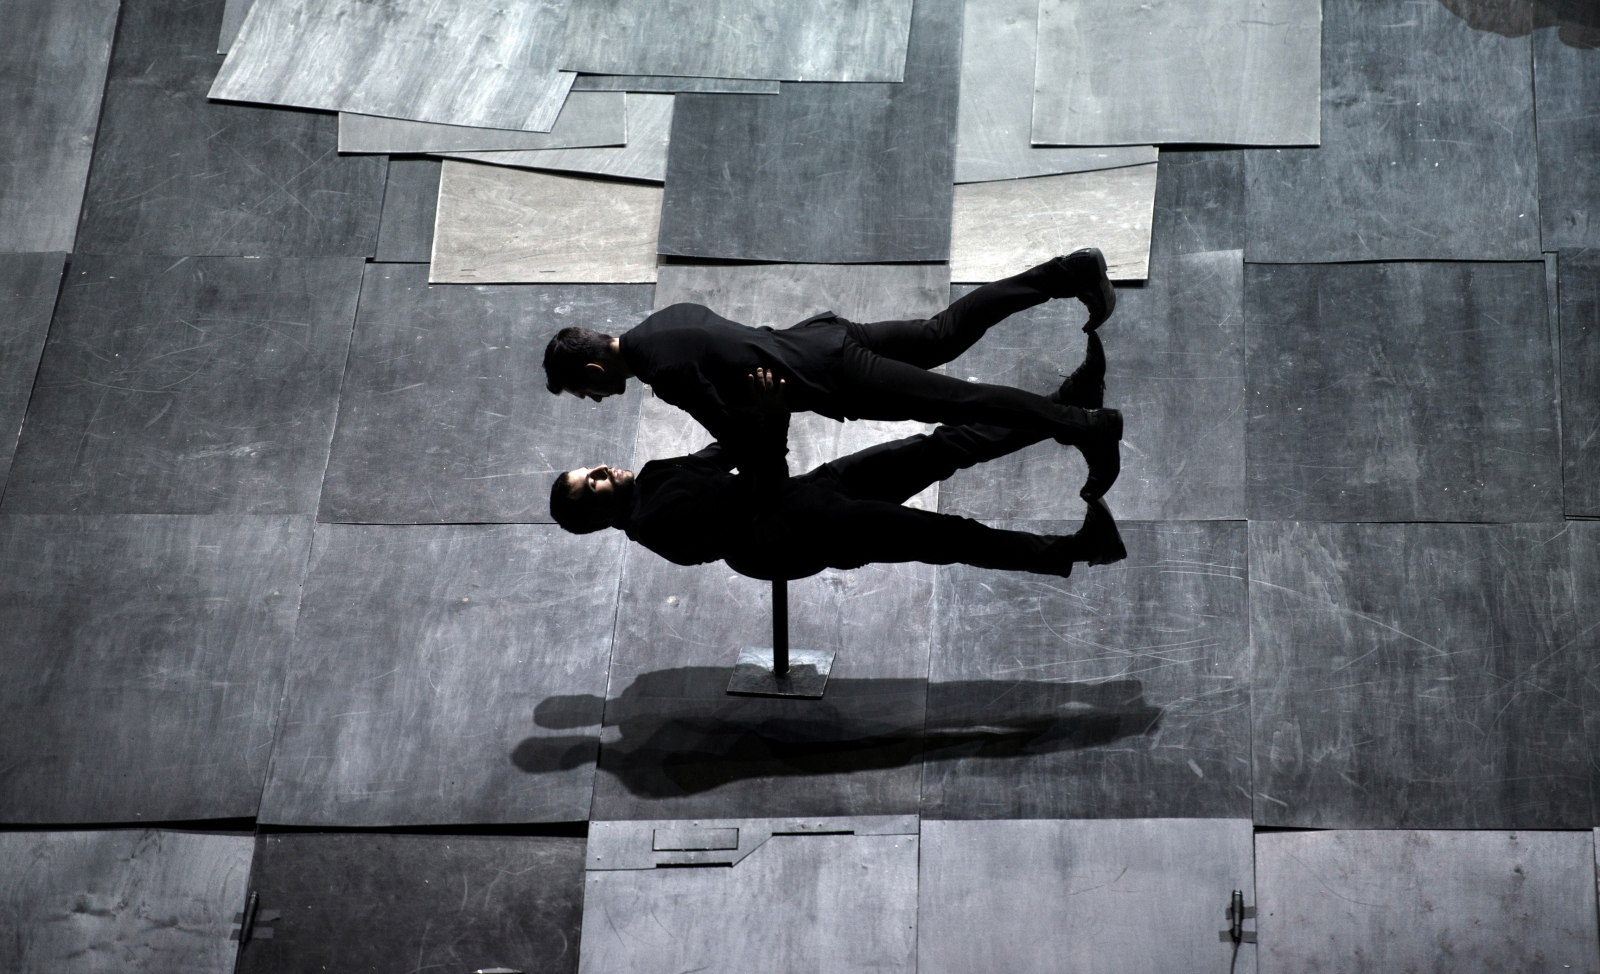 The Great Tamer Papaioannou Monaco Dance Forum